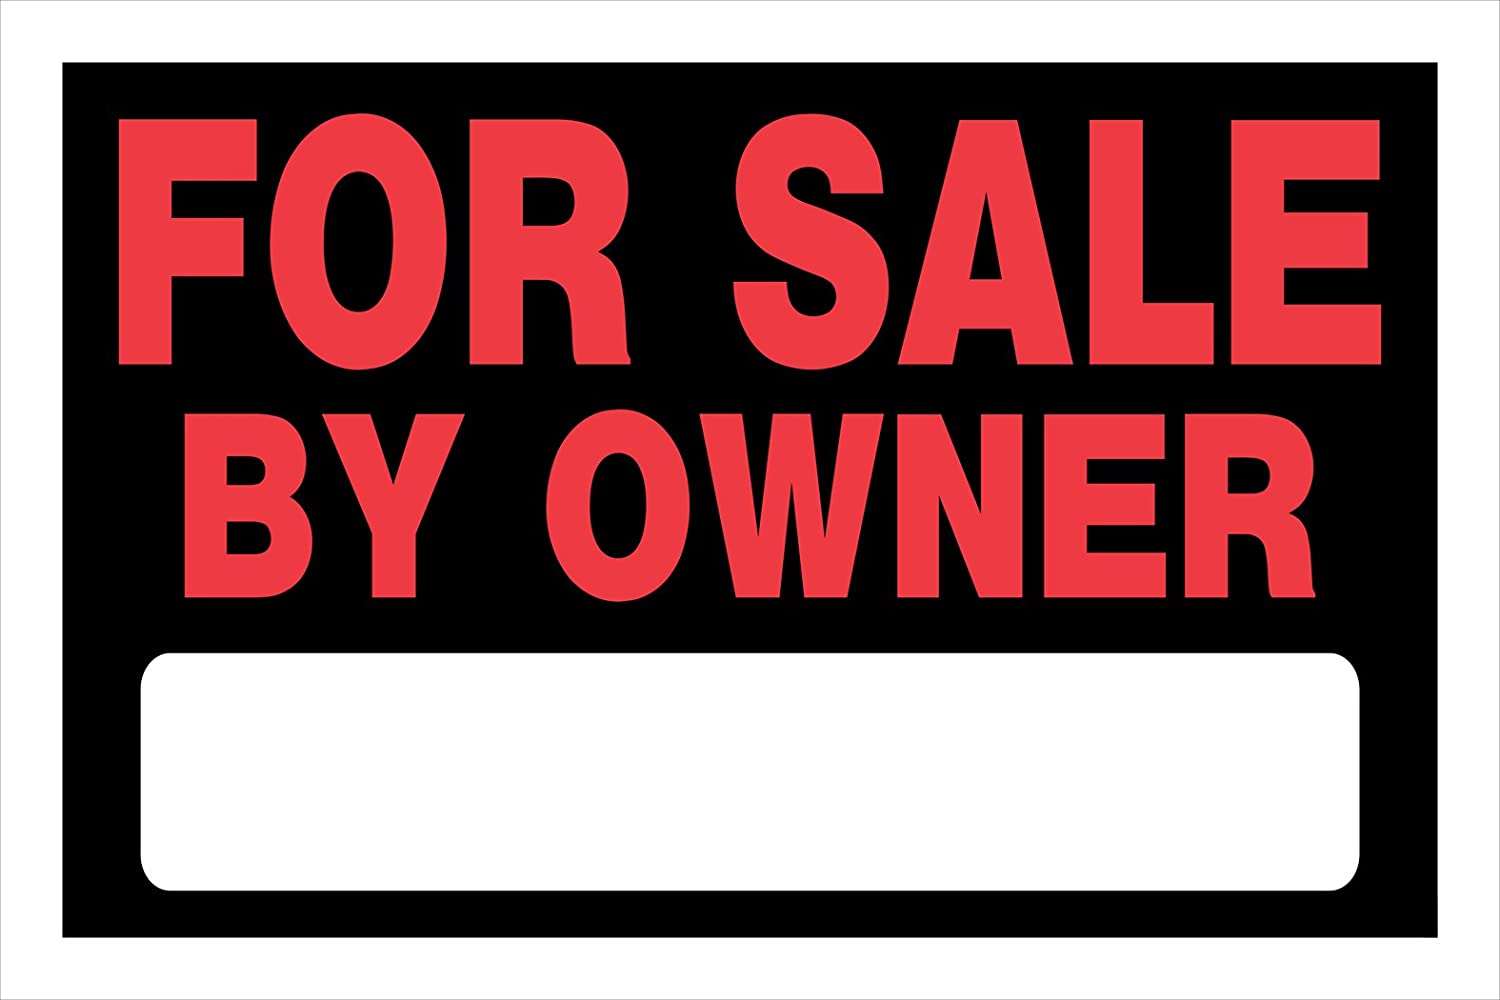 Hillman 839930 For Sale By Owner Sign with Space for Fill In, Black and Red Plastic, 8x12 Inches, 1-Sign